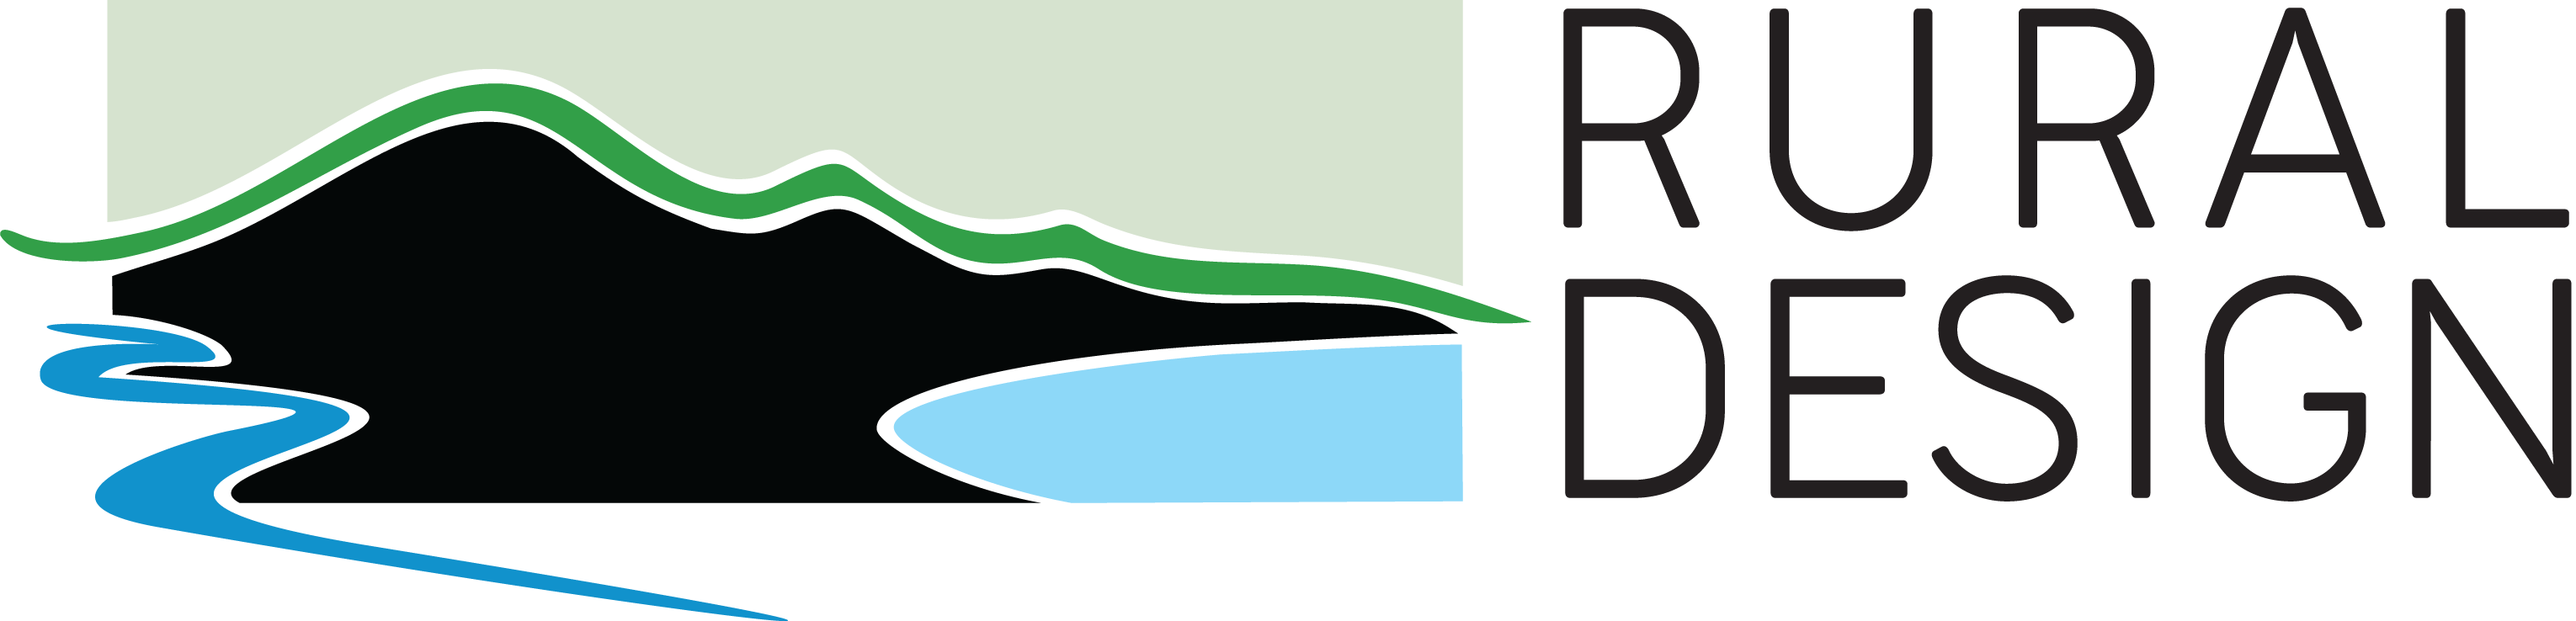 Rural Design Logo